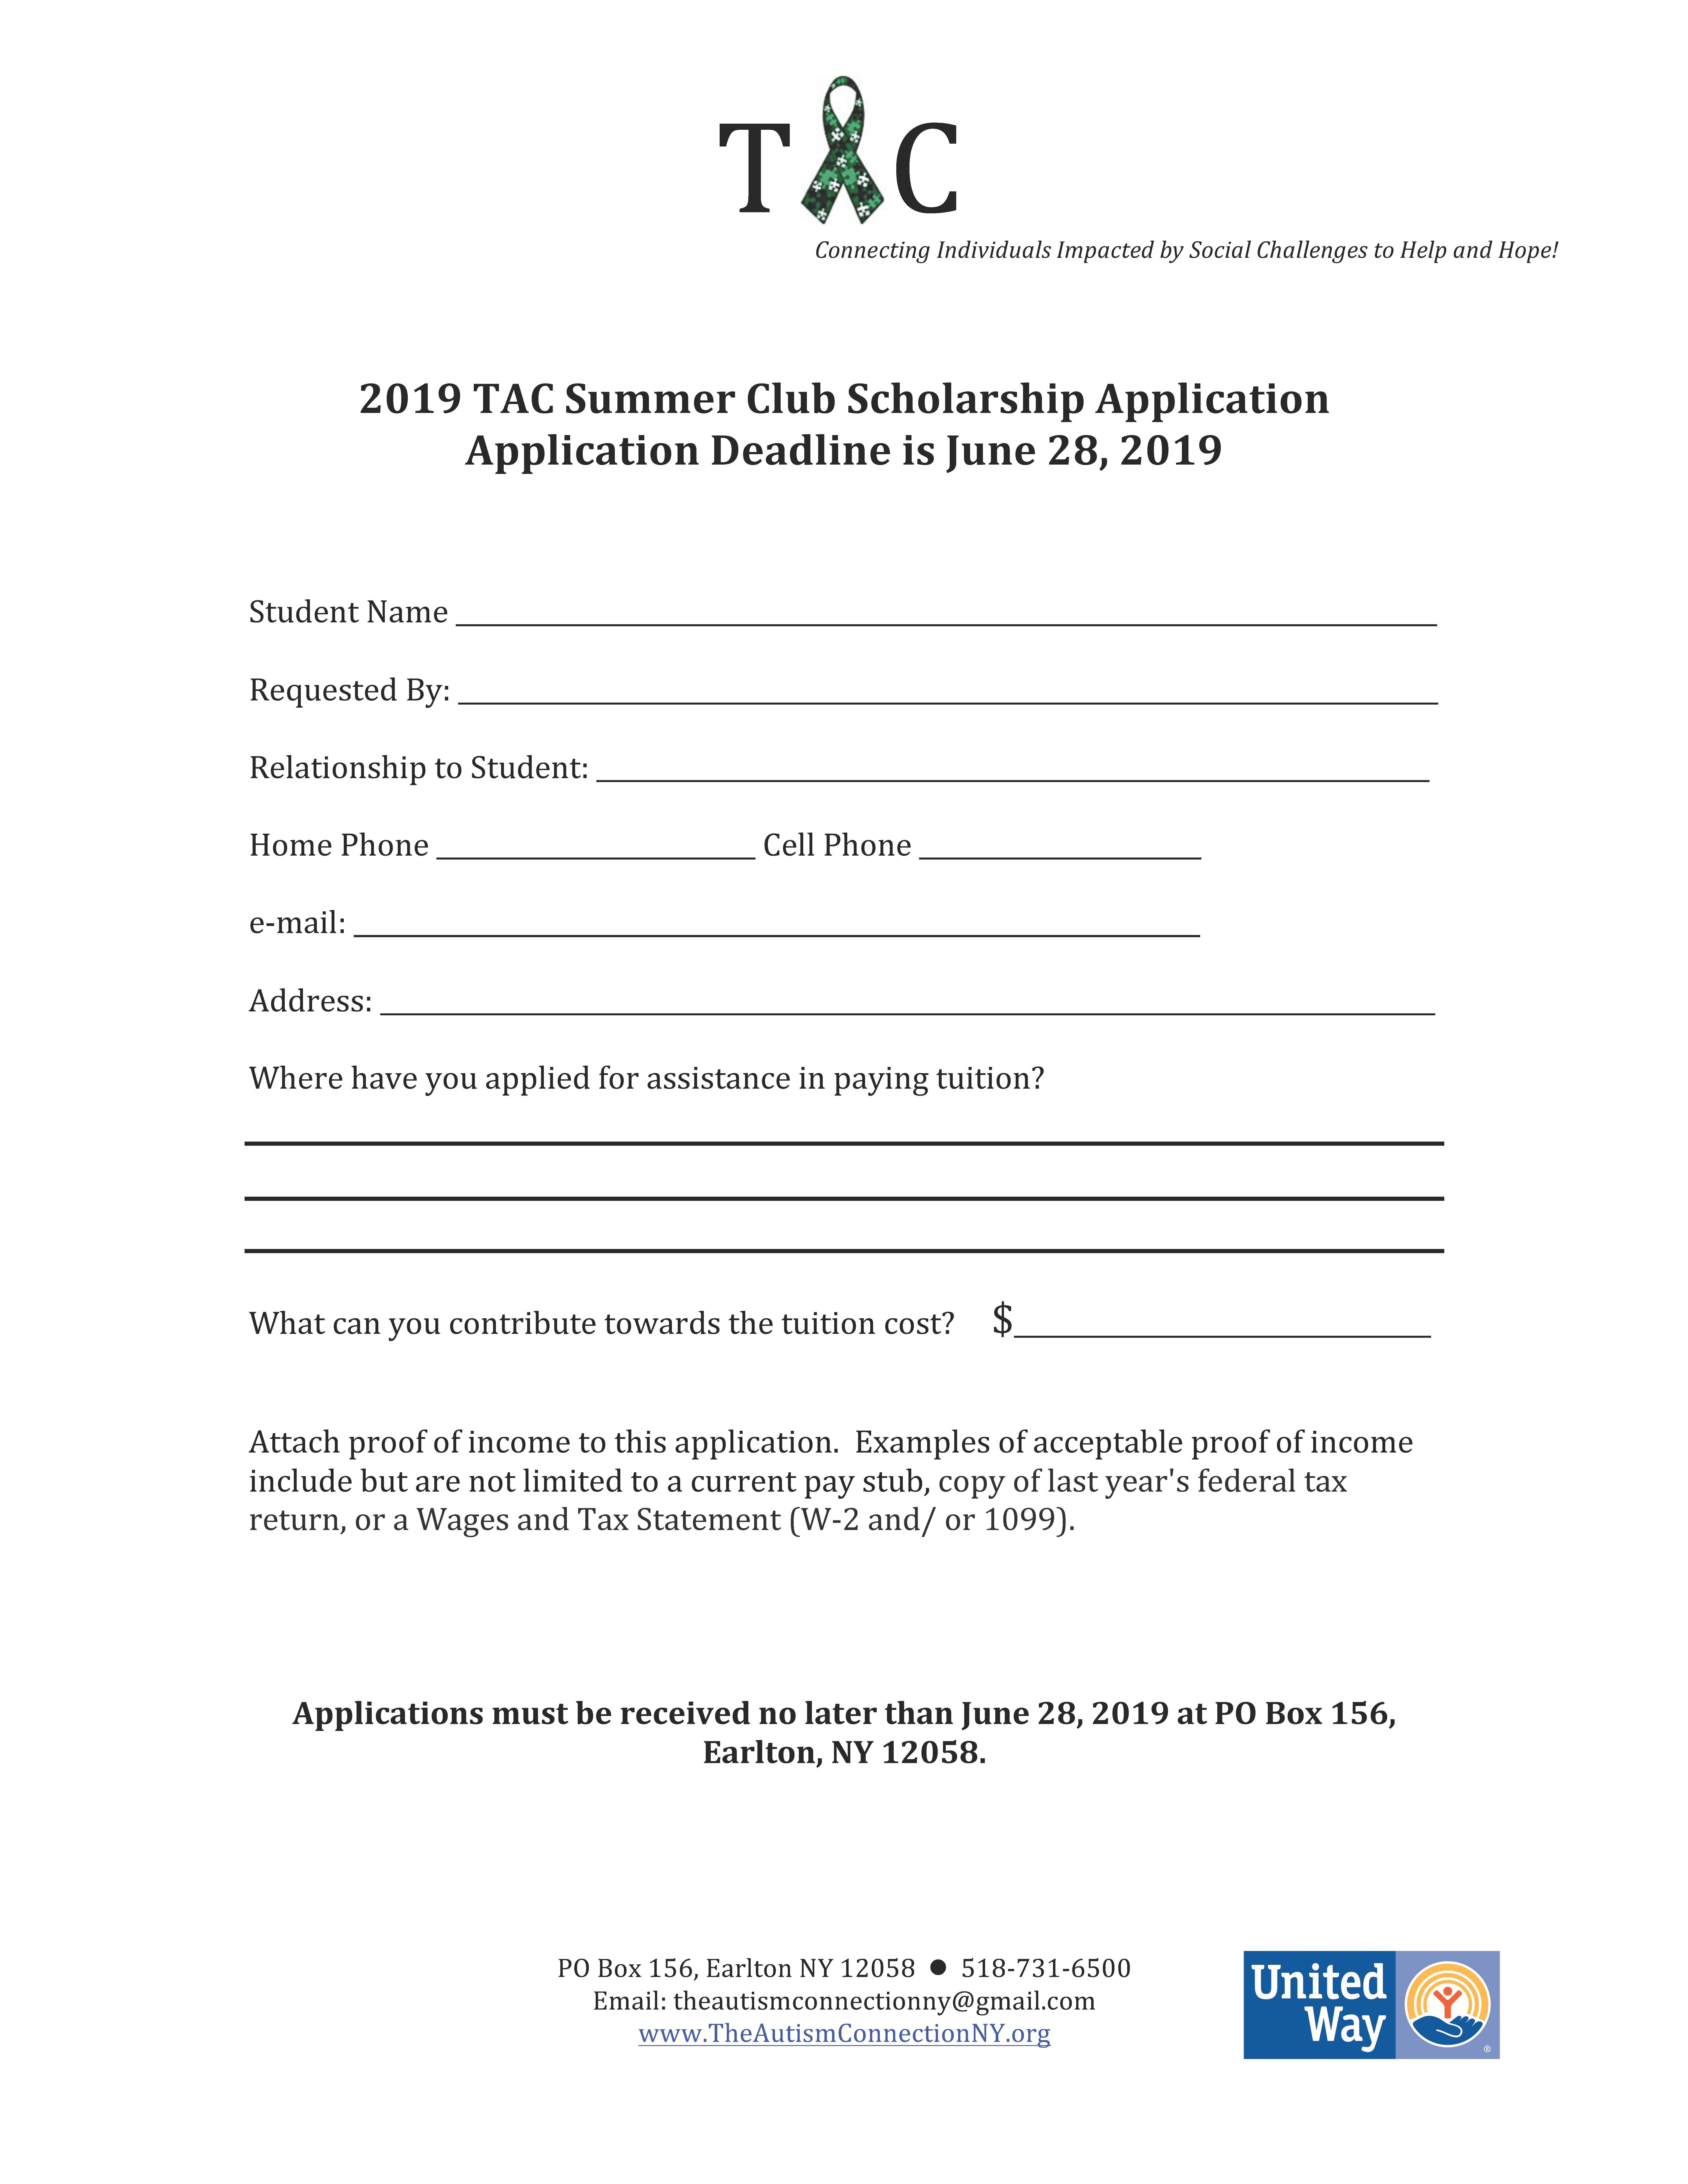 2019 TAC Summer Club Scholarship Application 2019 Rev 1